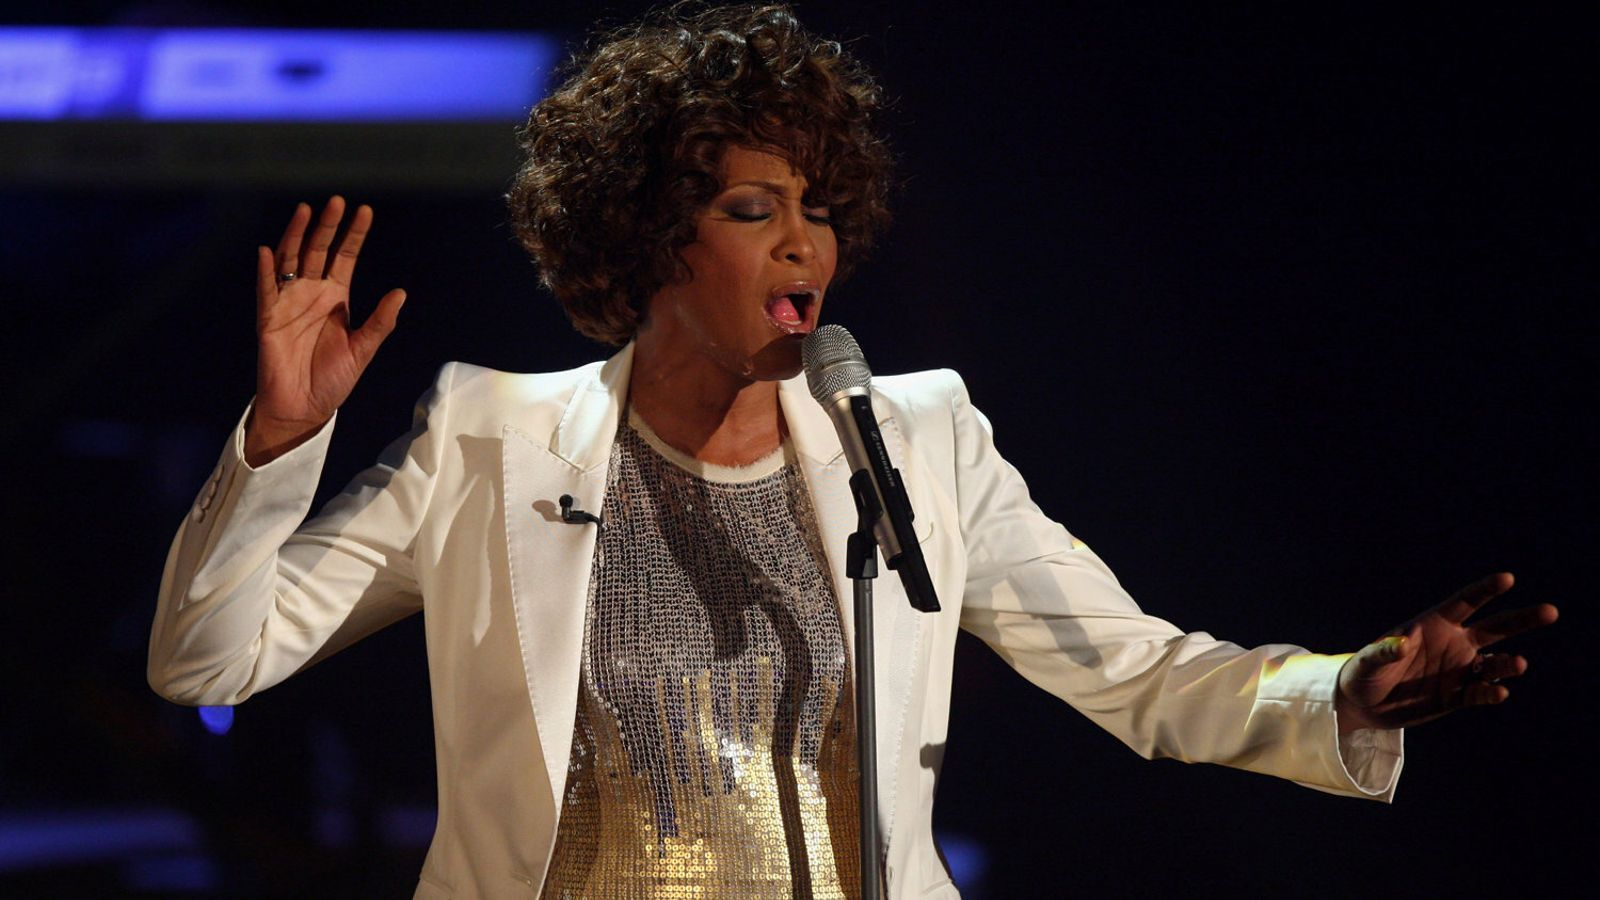 L'holograma de Whitney Houston surt de gira